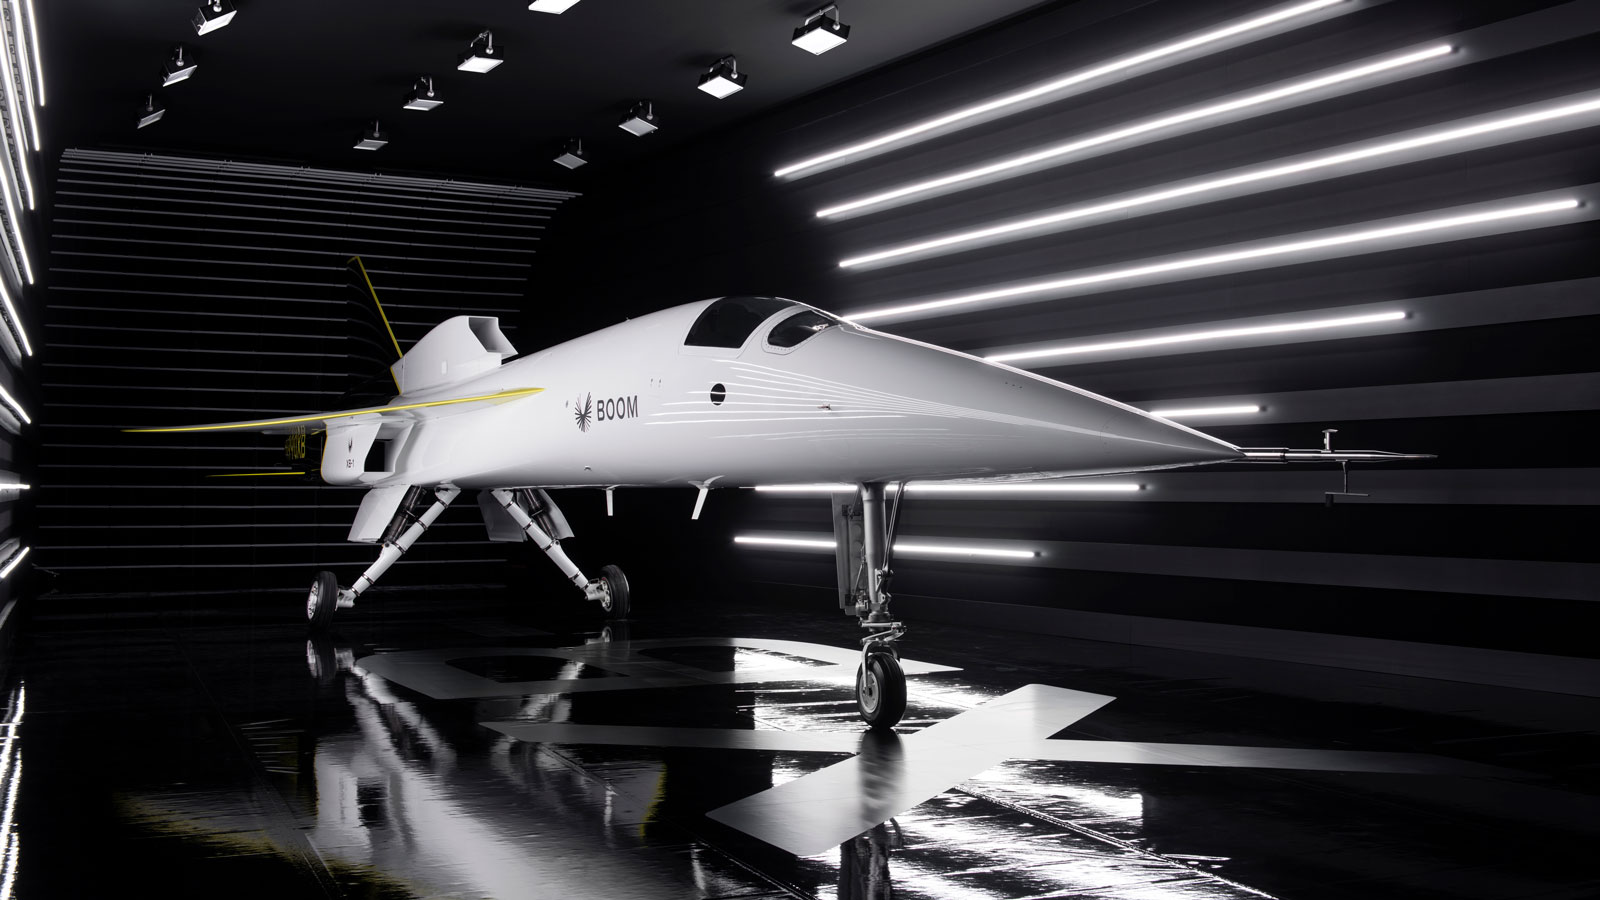 Supersonic travel is here': Boom rolls out XB-1 demonstrator aircraft | CNN Travel